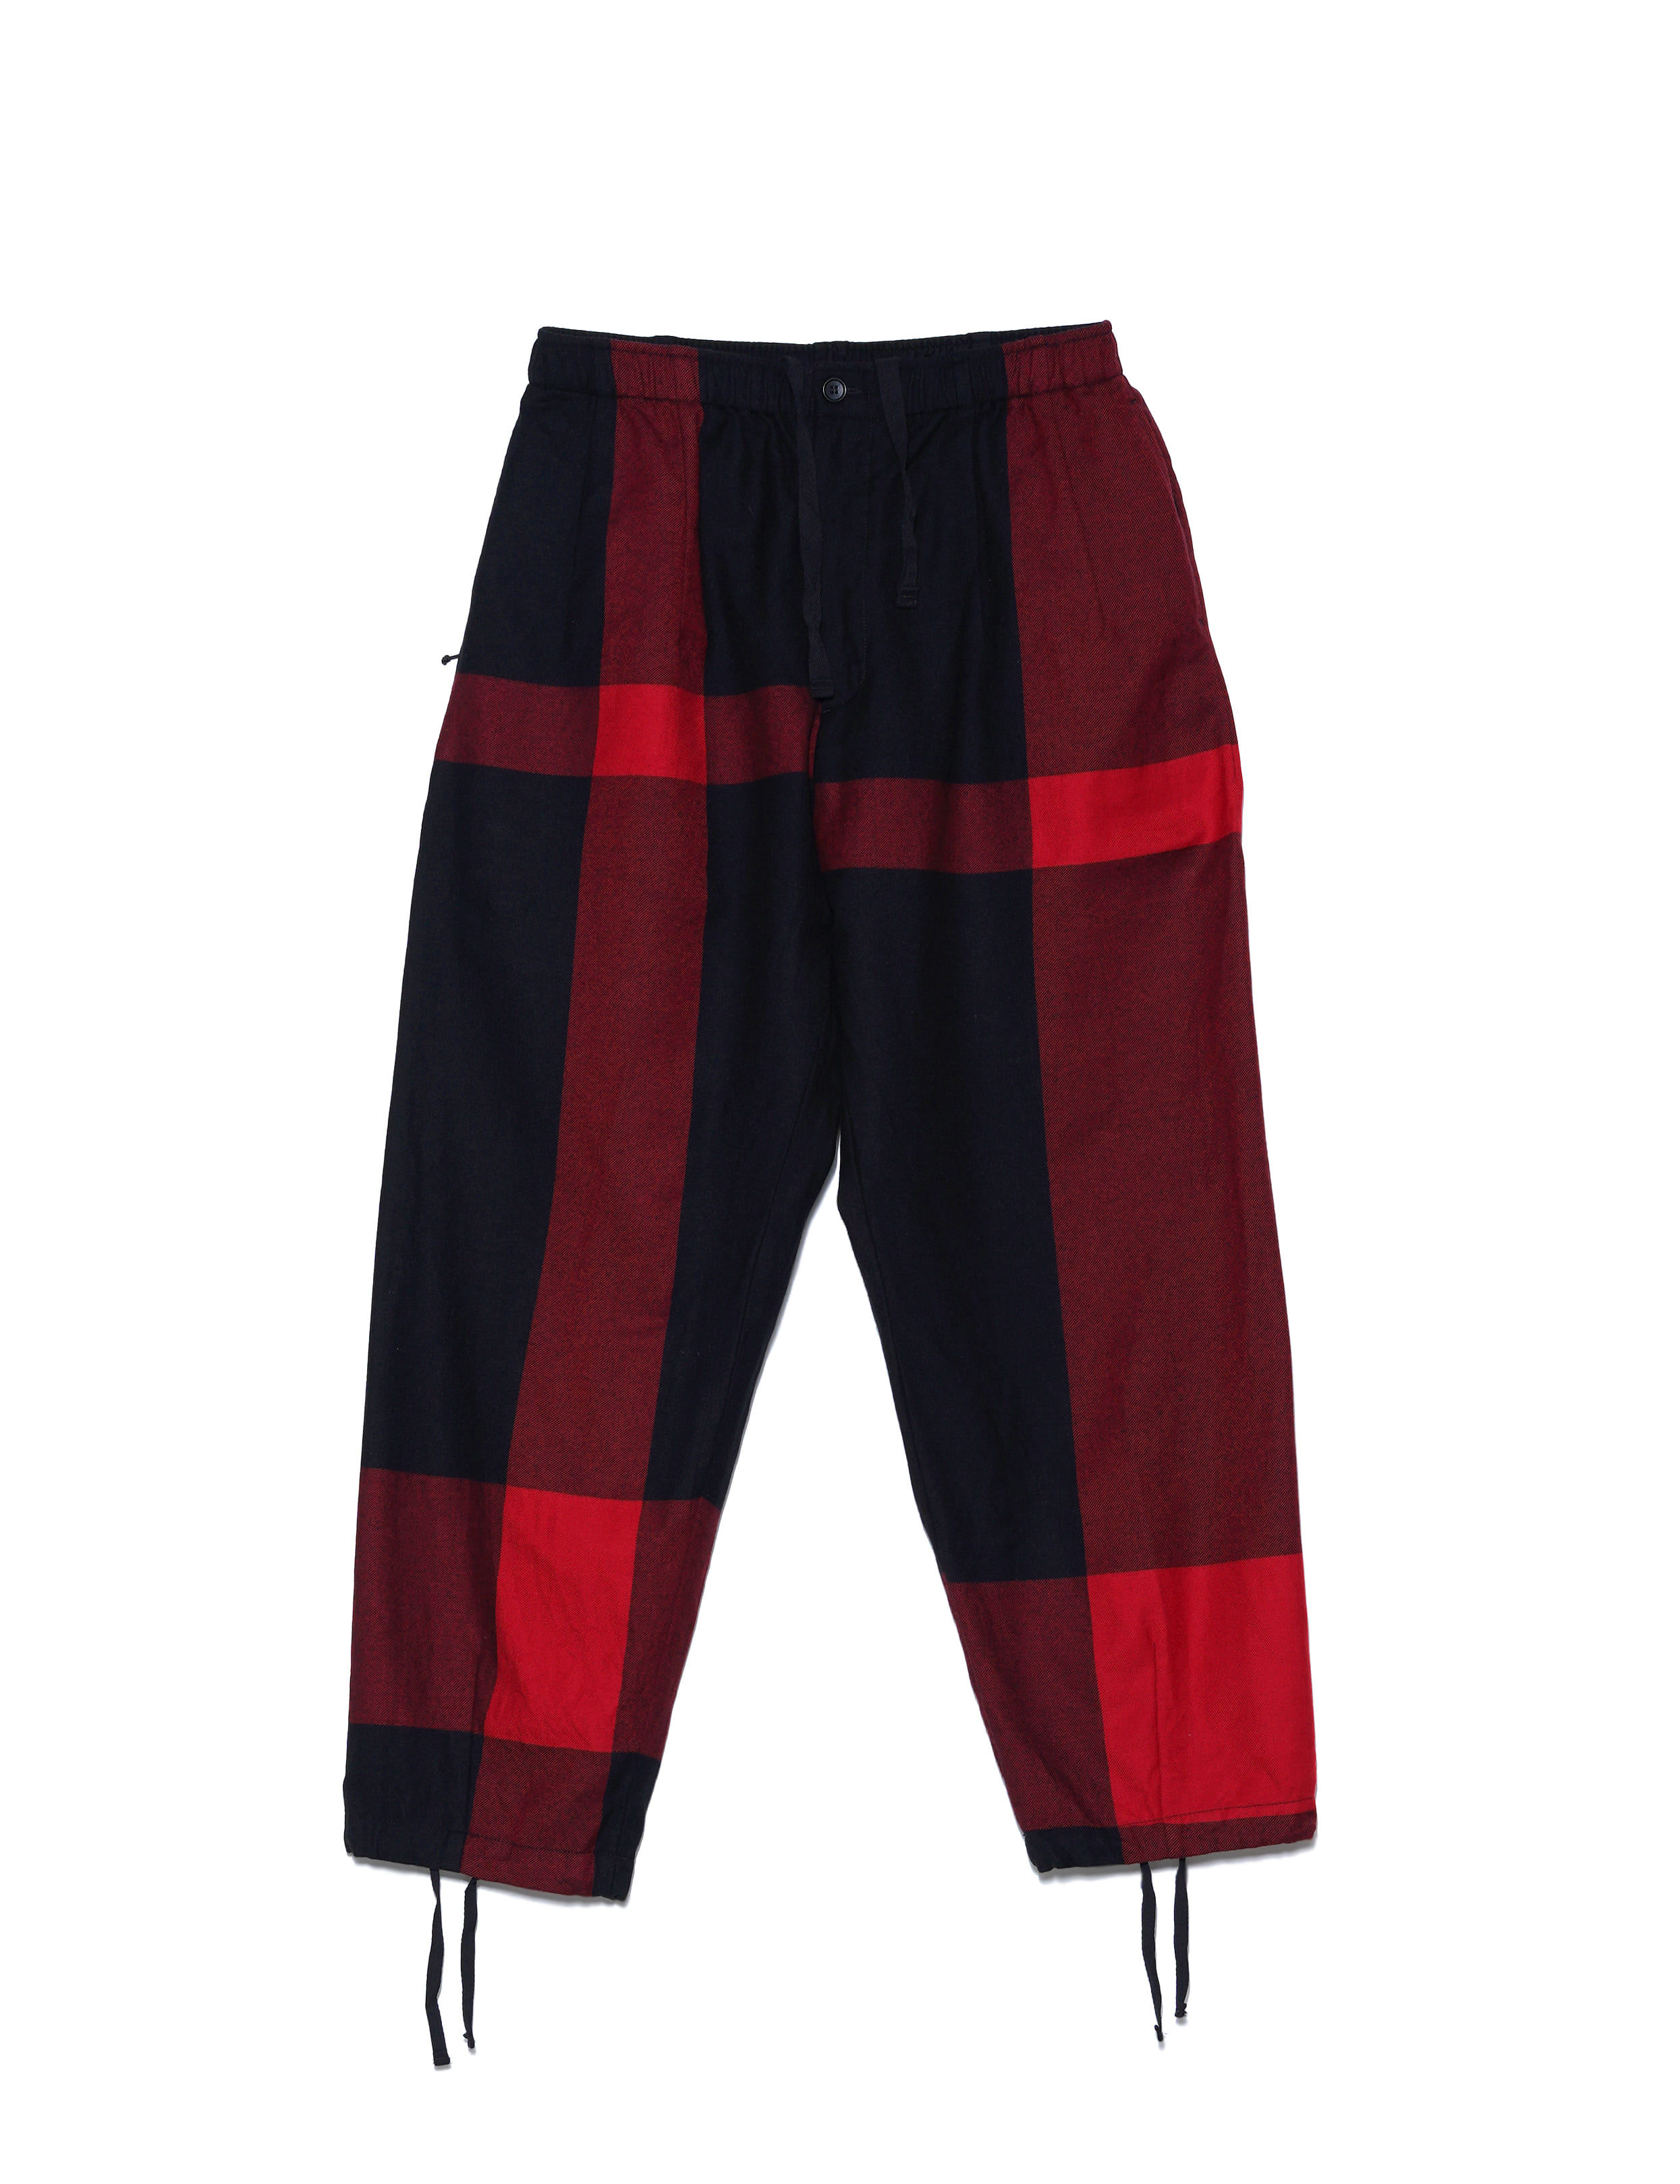 BALLOON PANT (BLACK/RED)